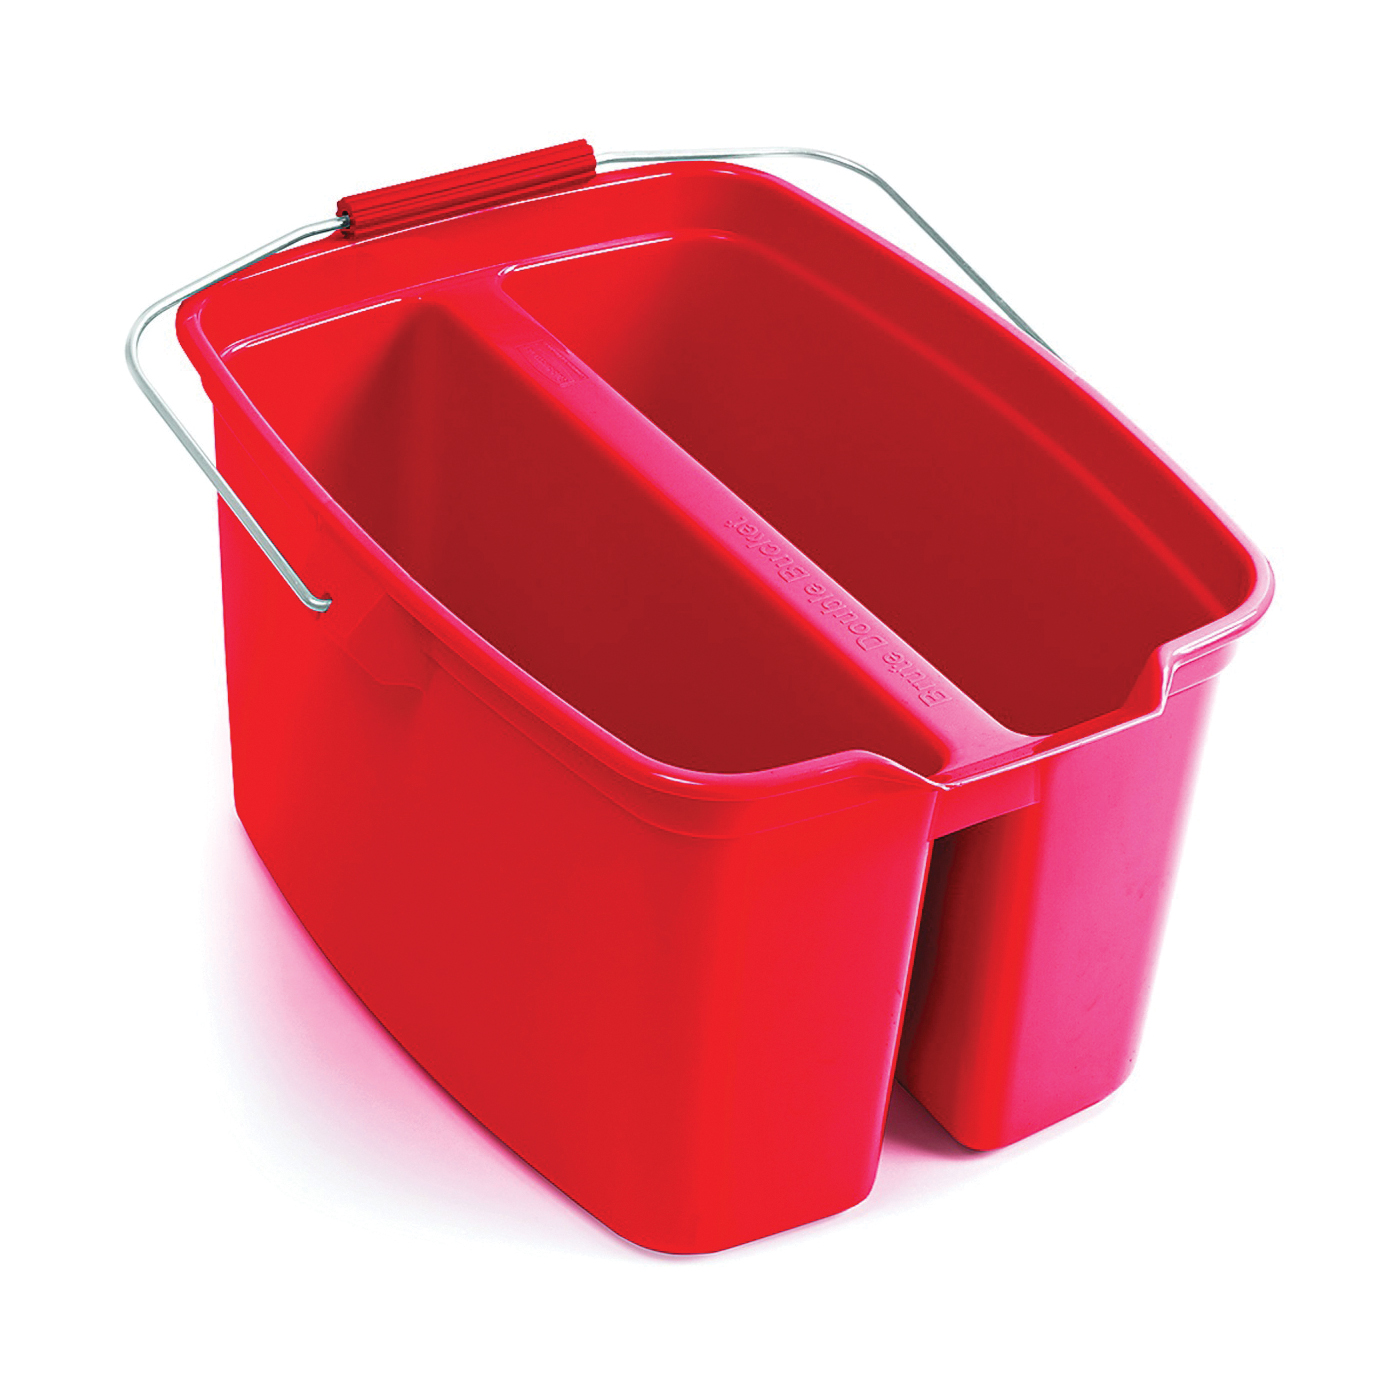 Picture of Rubbermaid 1887094 Double Pail, 19 qt Capacity, Plastic Wringer, Red